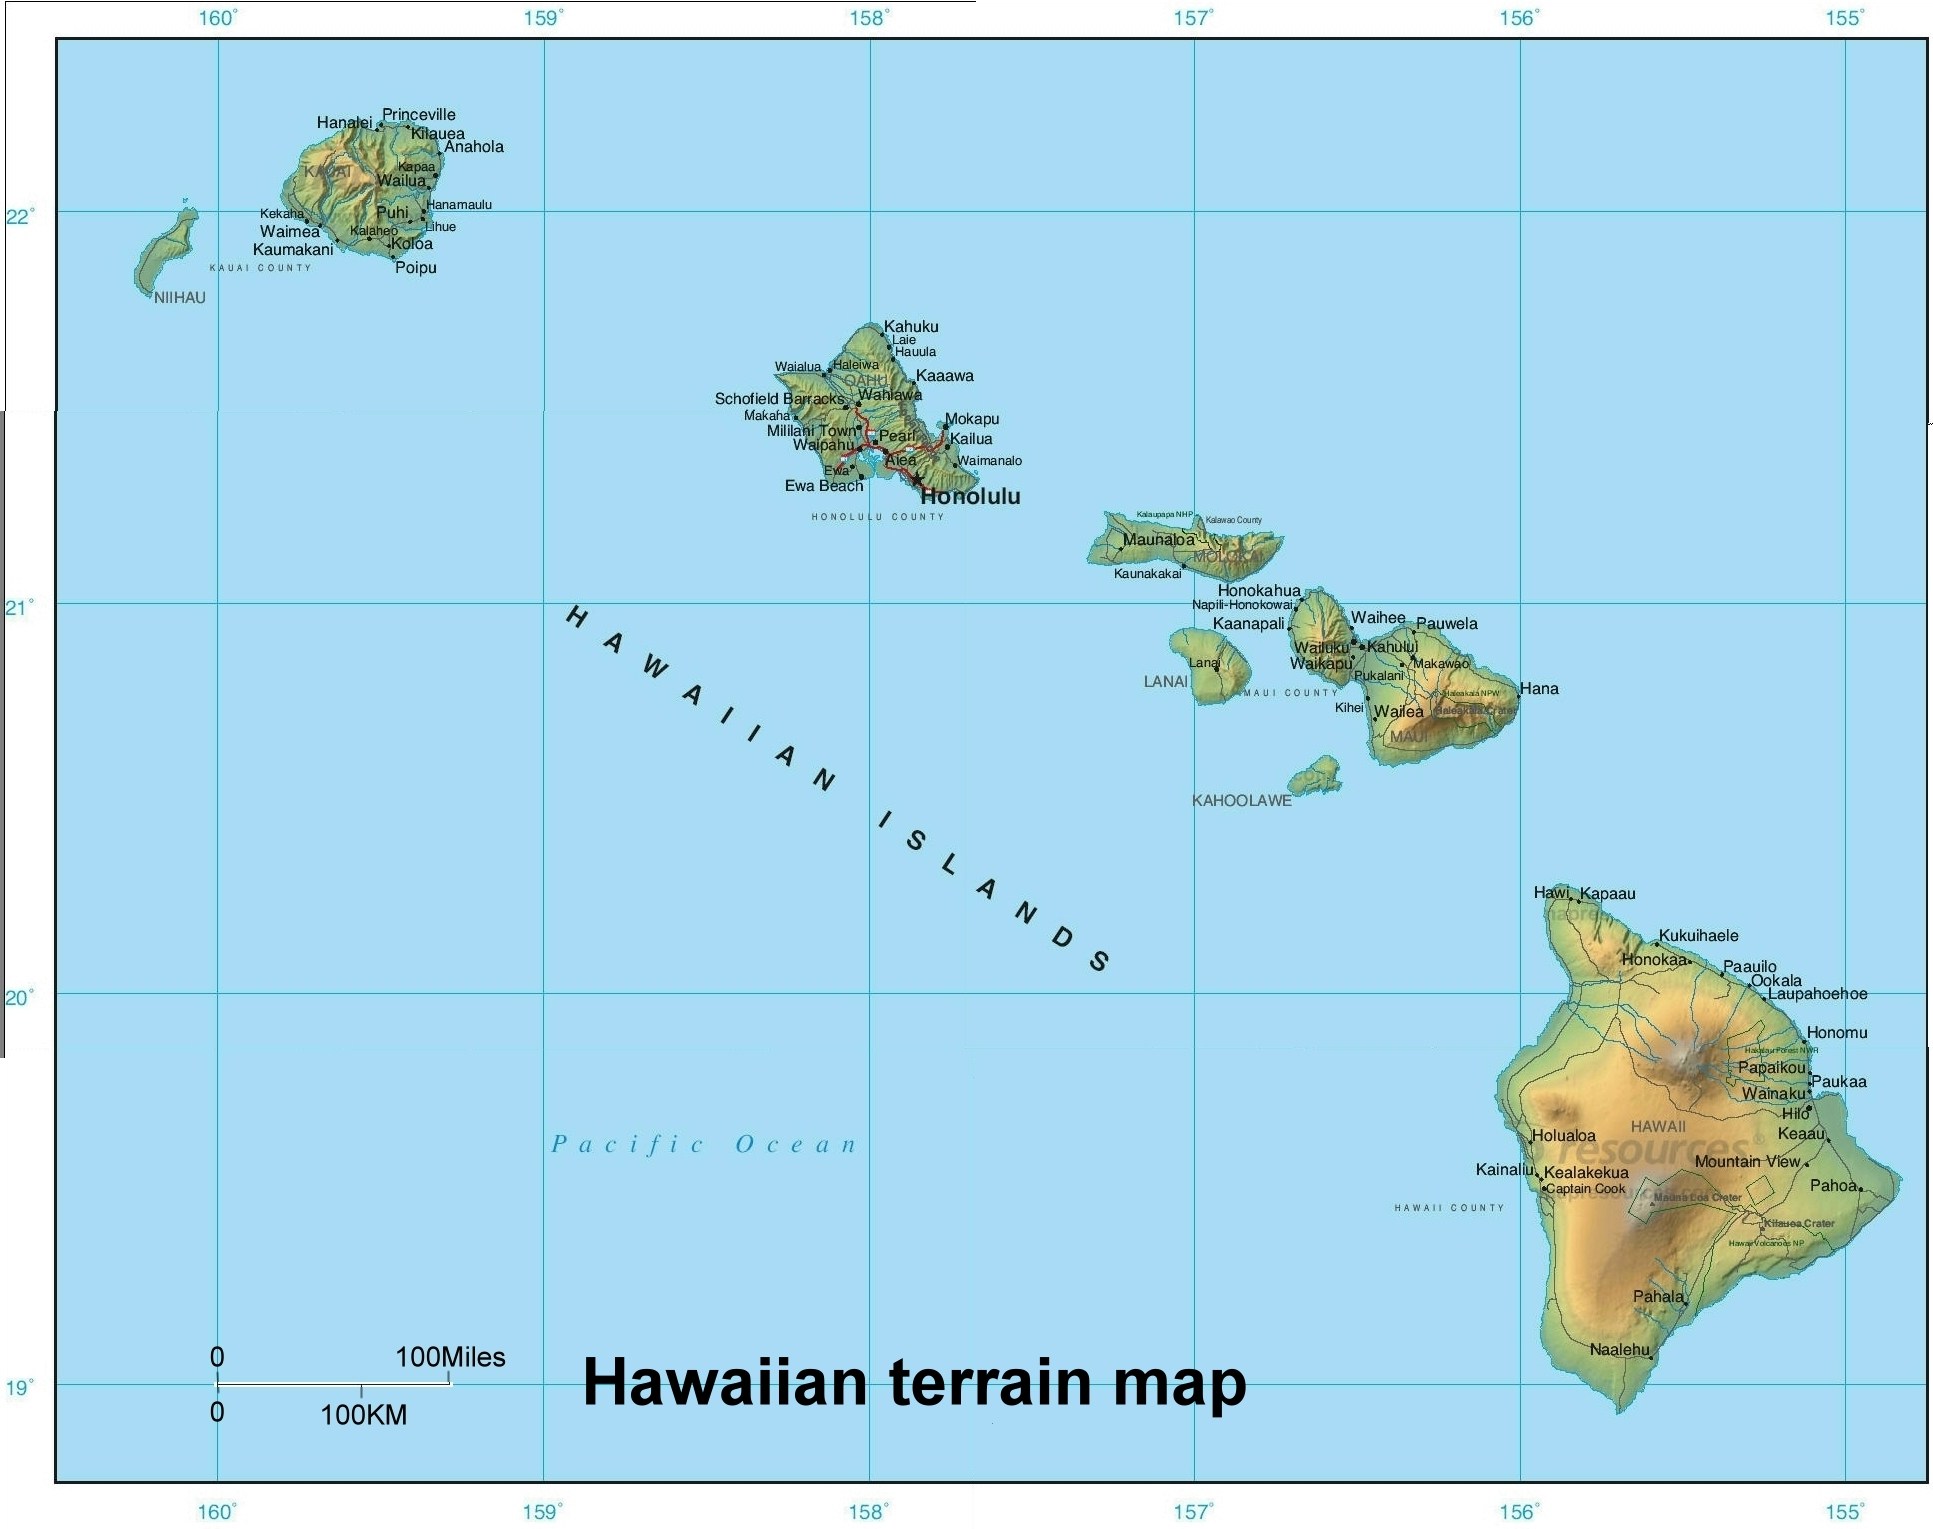 Honolulu hawaii world map afputra similiar map of hawaii on world map keywords which hawaiian island is the most progressive leftwing gumiabroncs Image collections